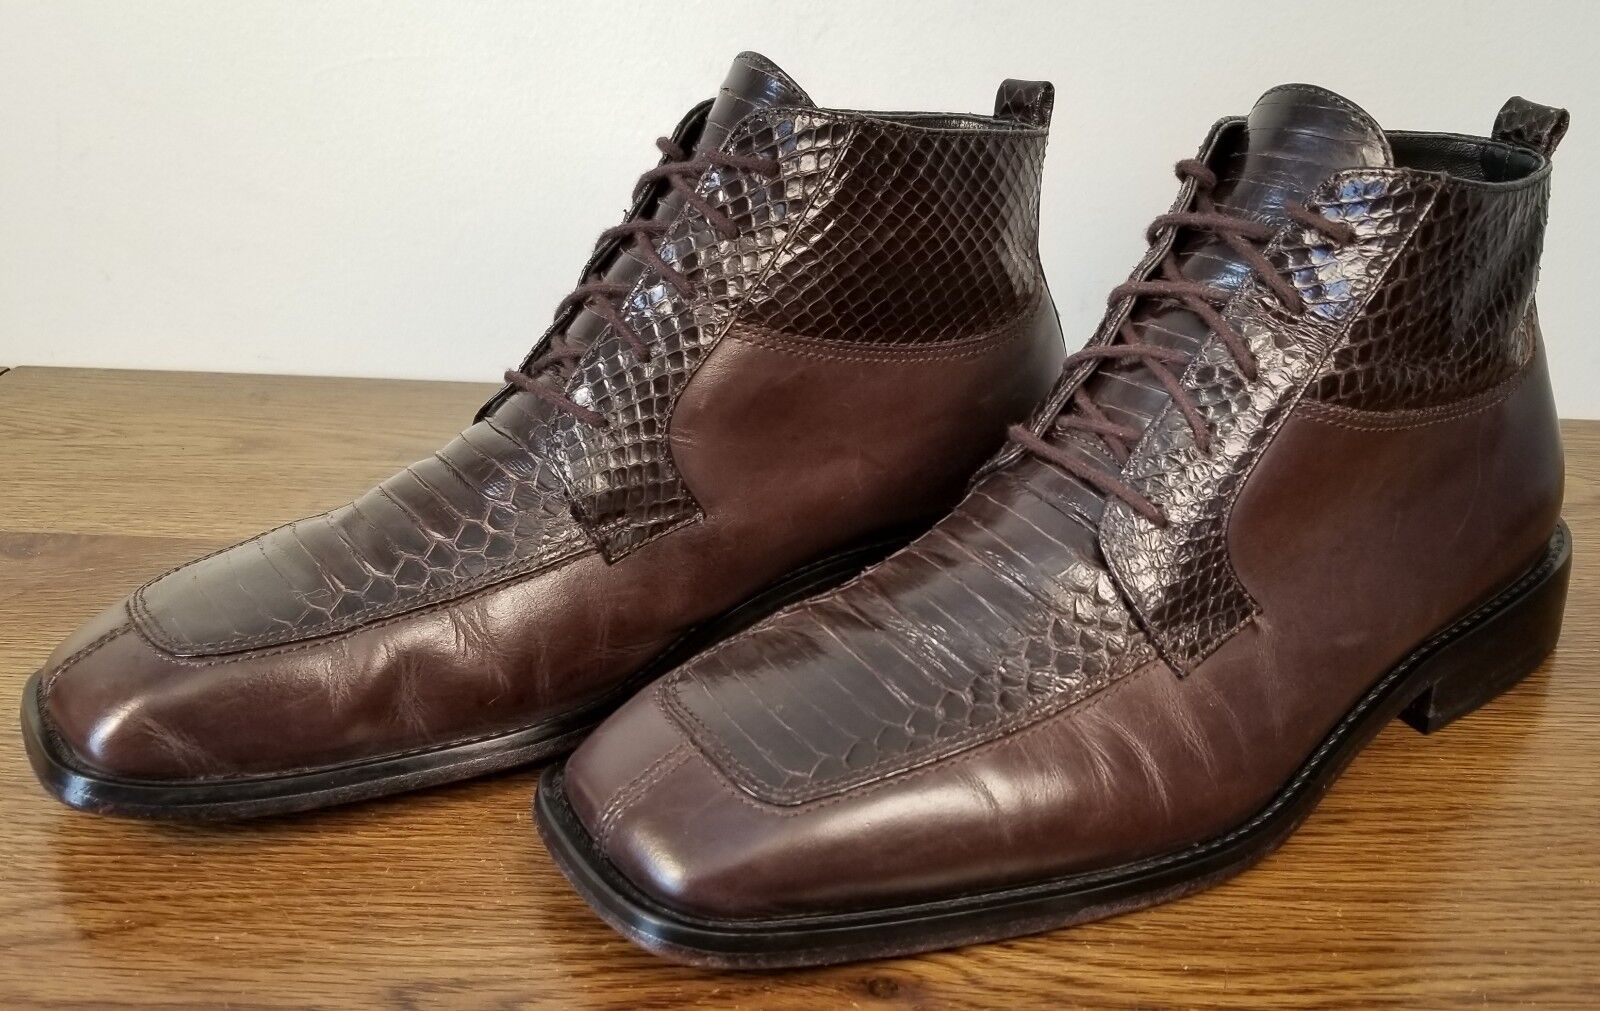 57c00dcb46f6 Giorgio Brutini Brown Genuine Snakeskin Leather Ankle Boots 934022 Men s Sz  8.5M